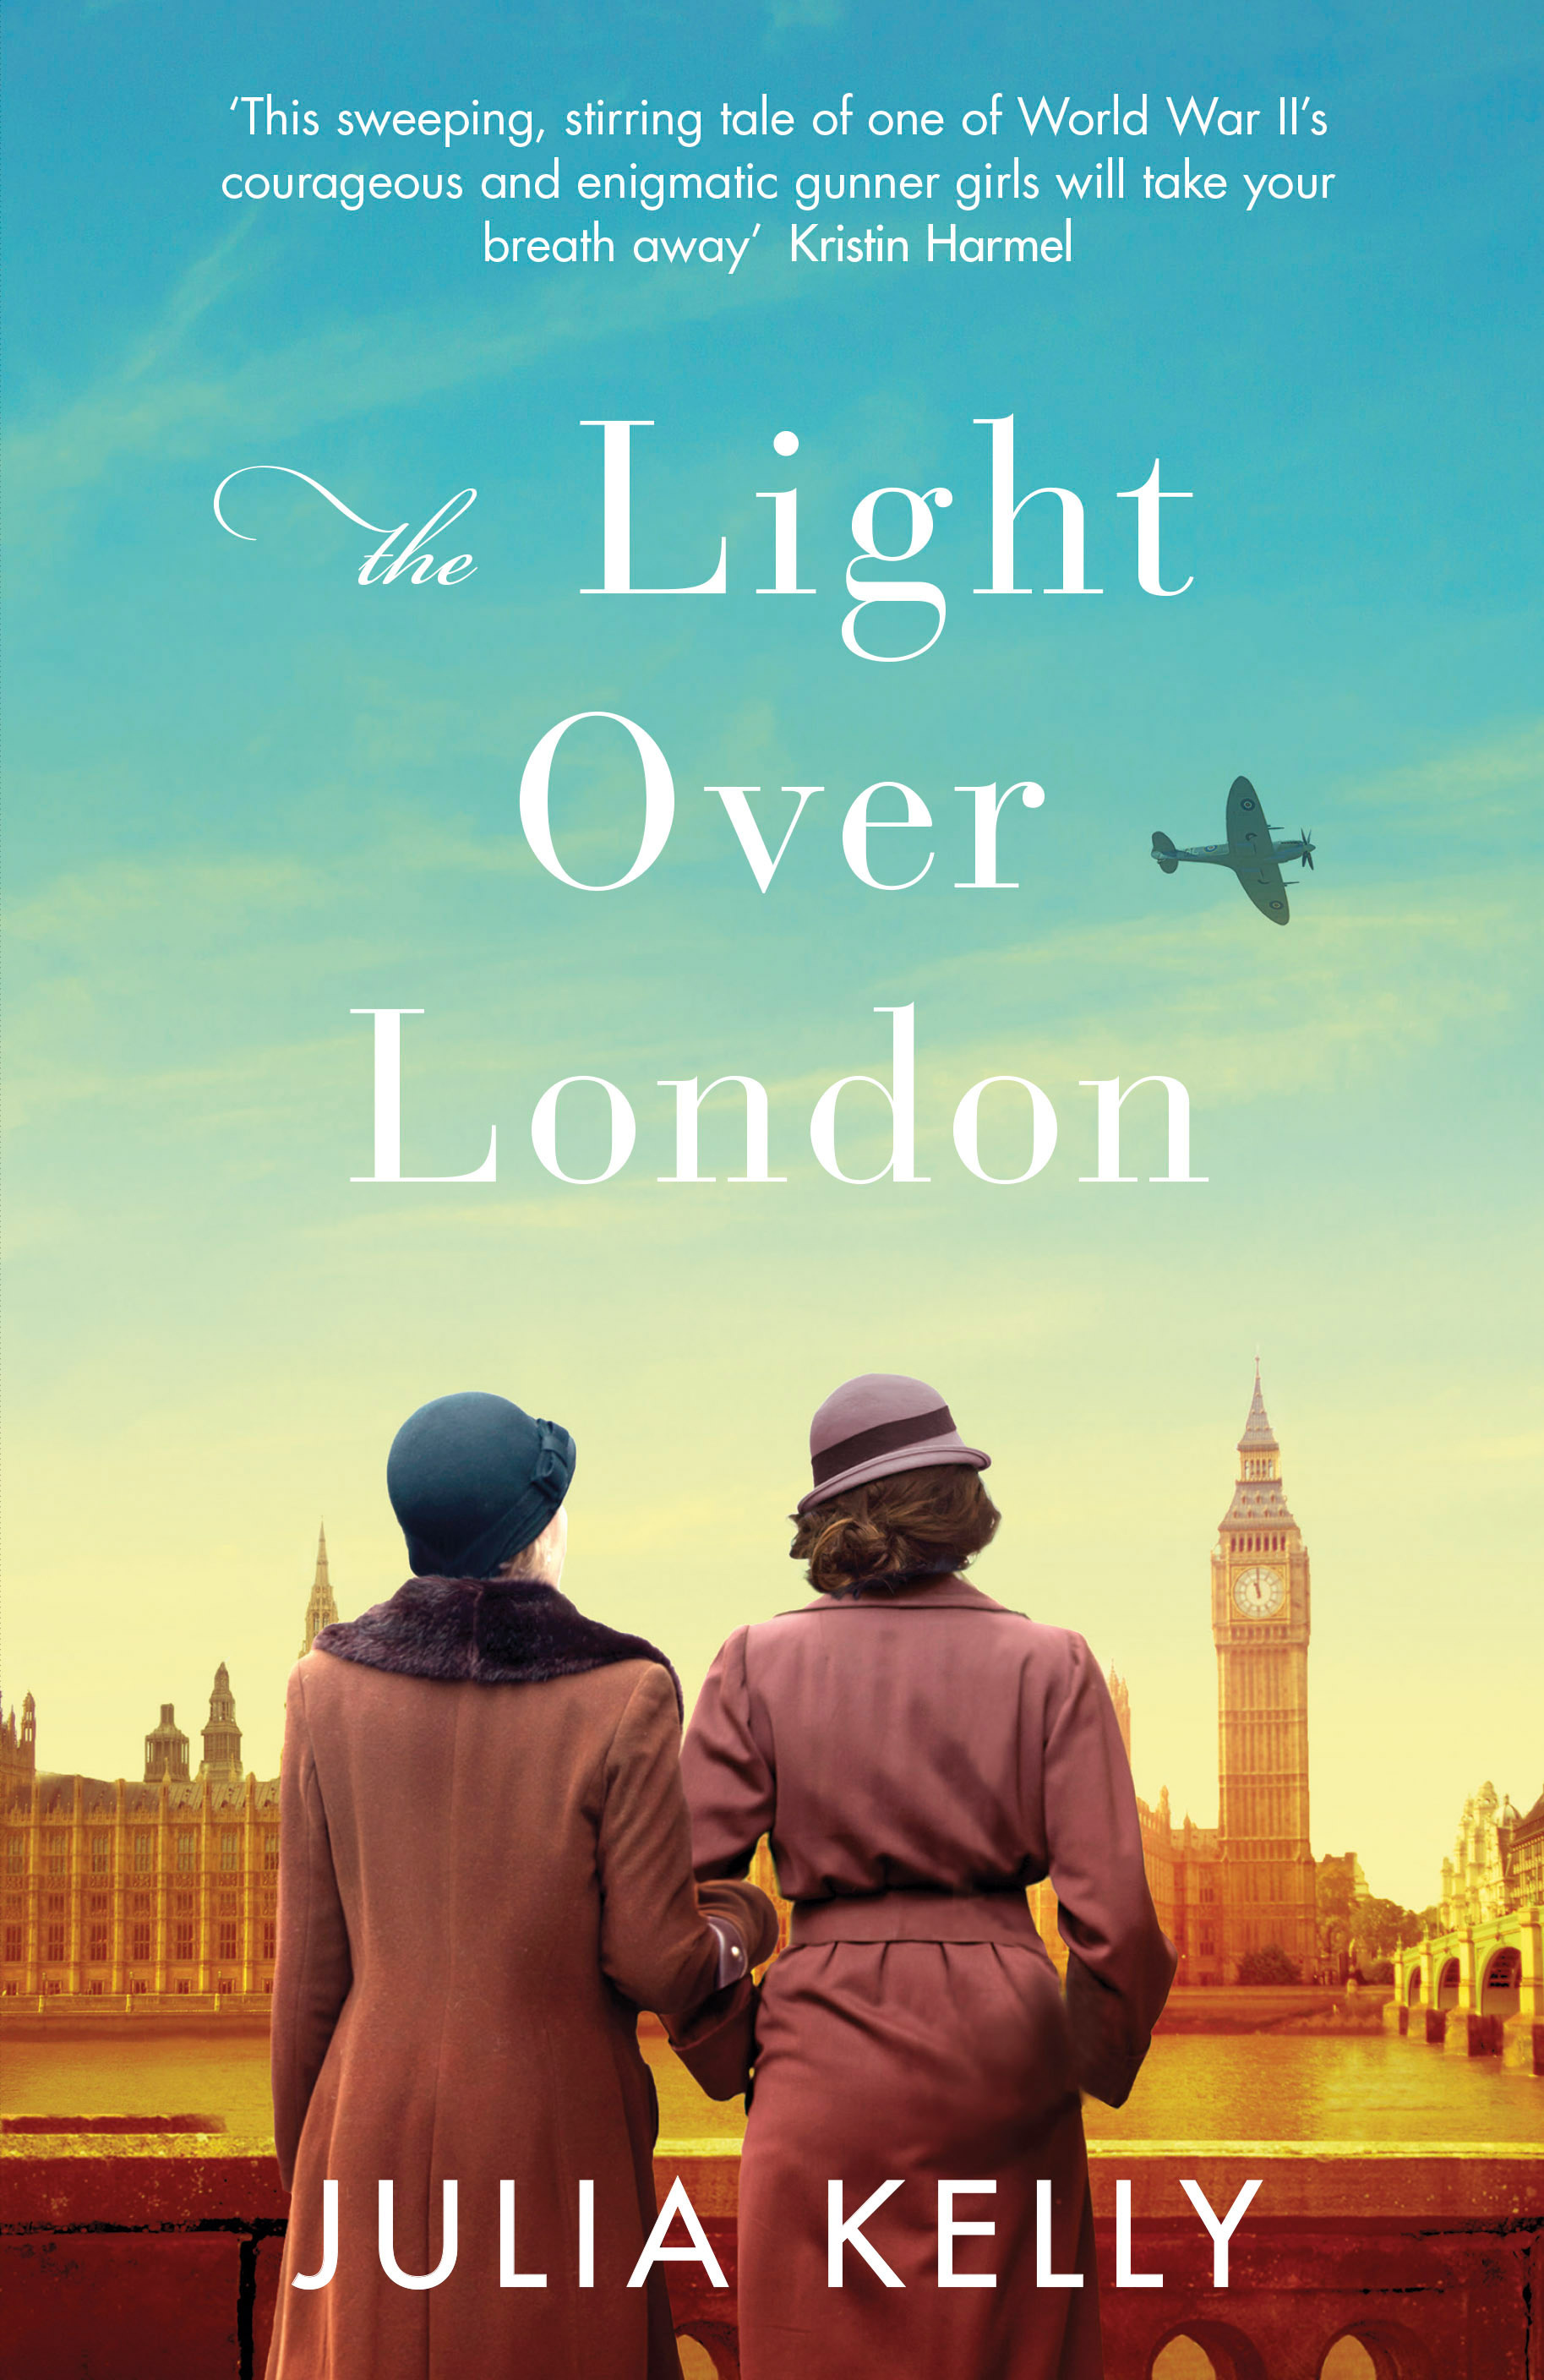 The Light Over London by Julia Kelly, ISBN: 9781409189367